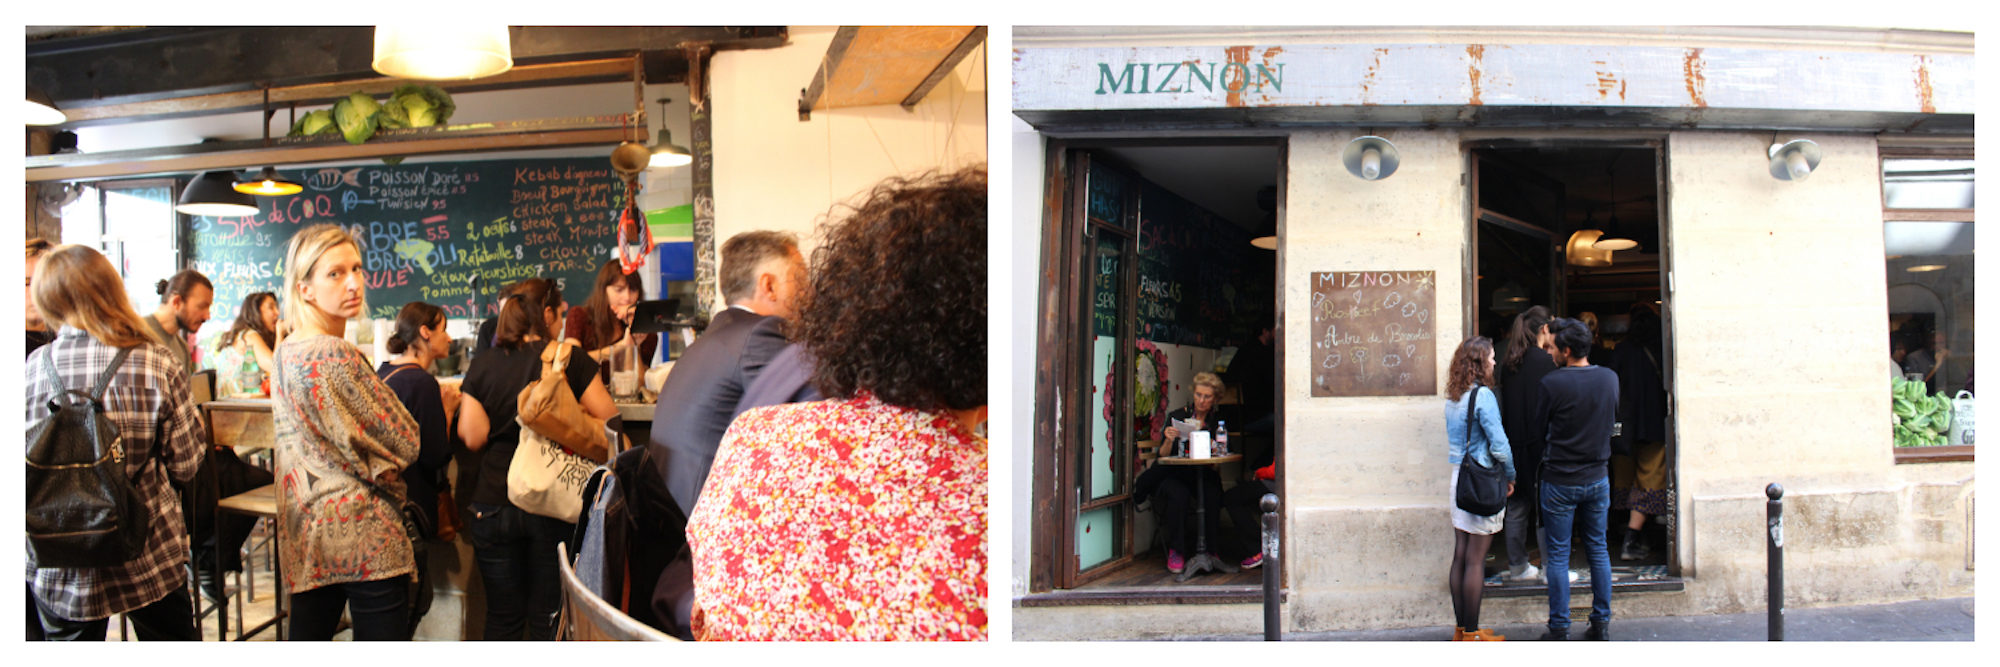 Hungry locals waiting for their falafel at Miznon restaurant in Paris (left). Miznon restaurant in Paris exterior with two people waiting in line (right).